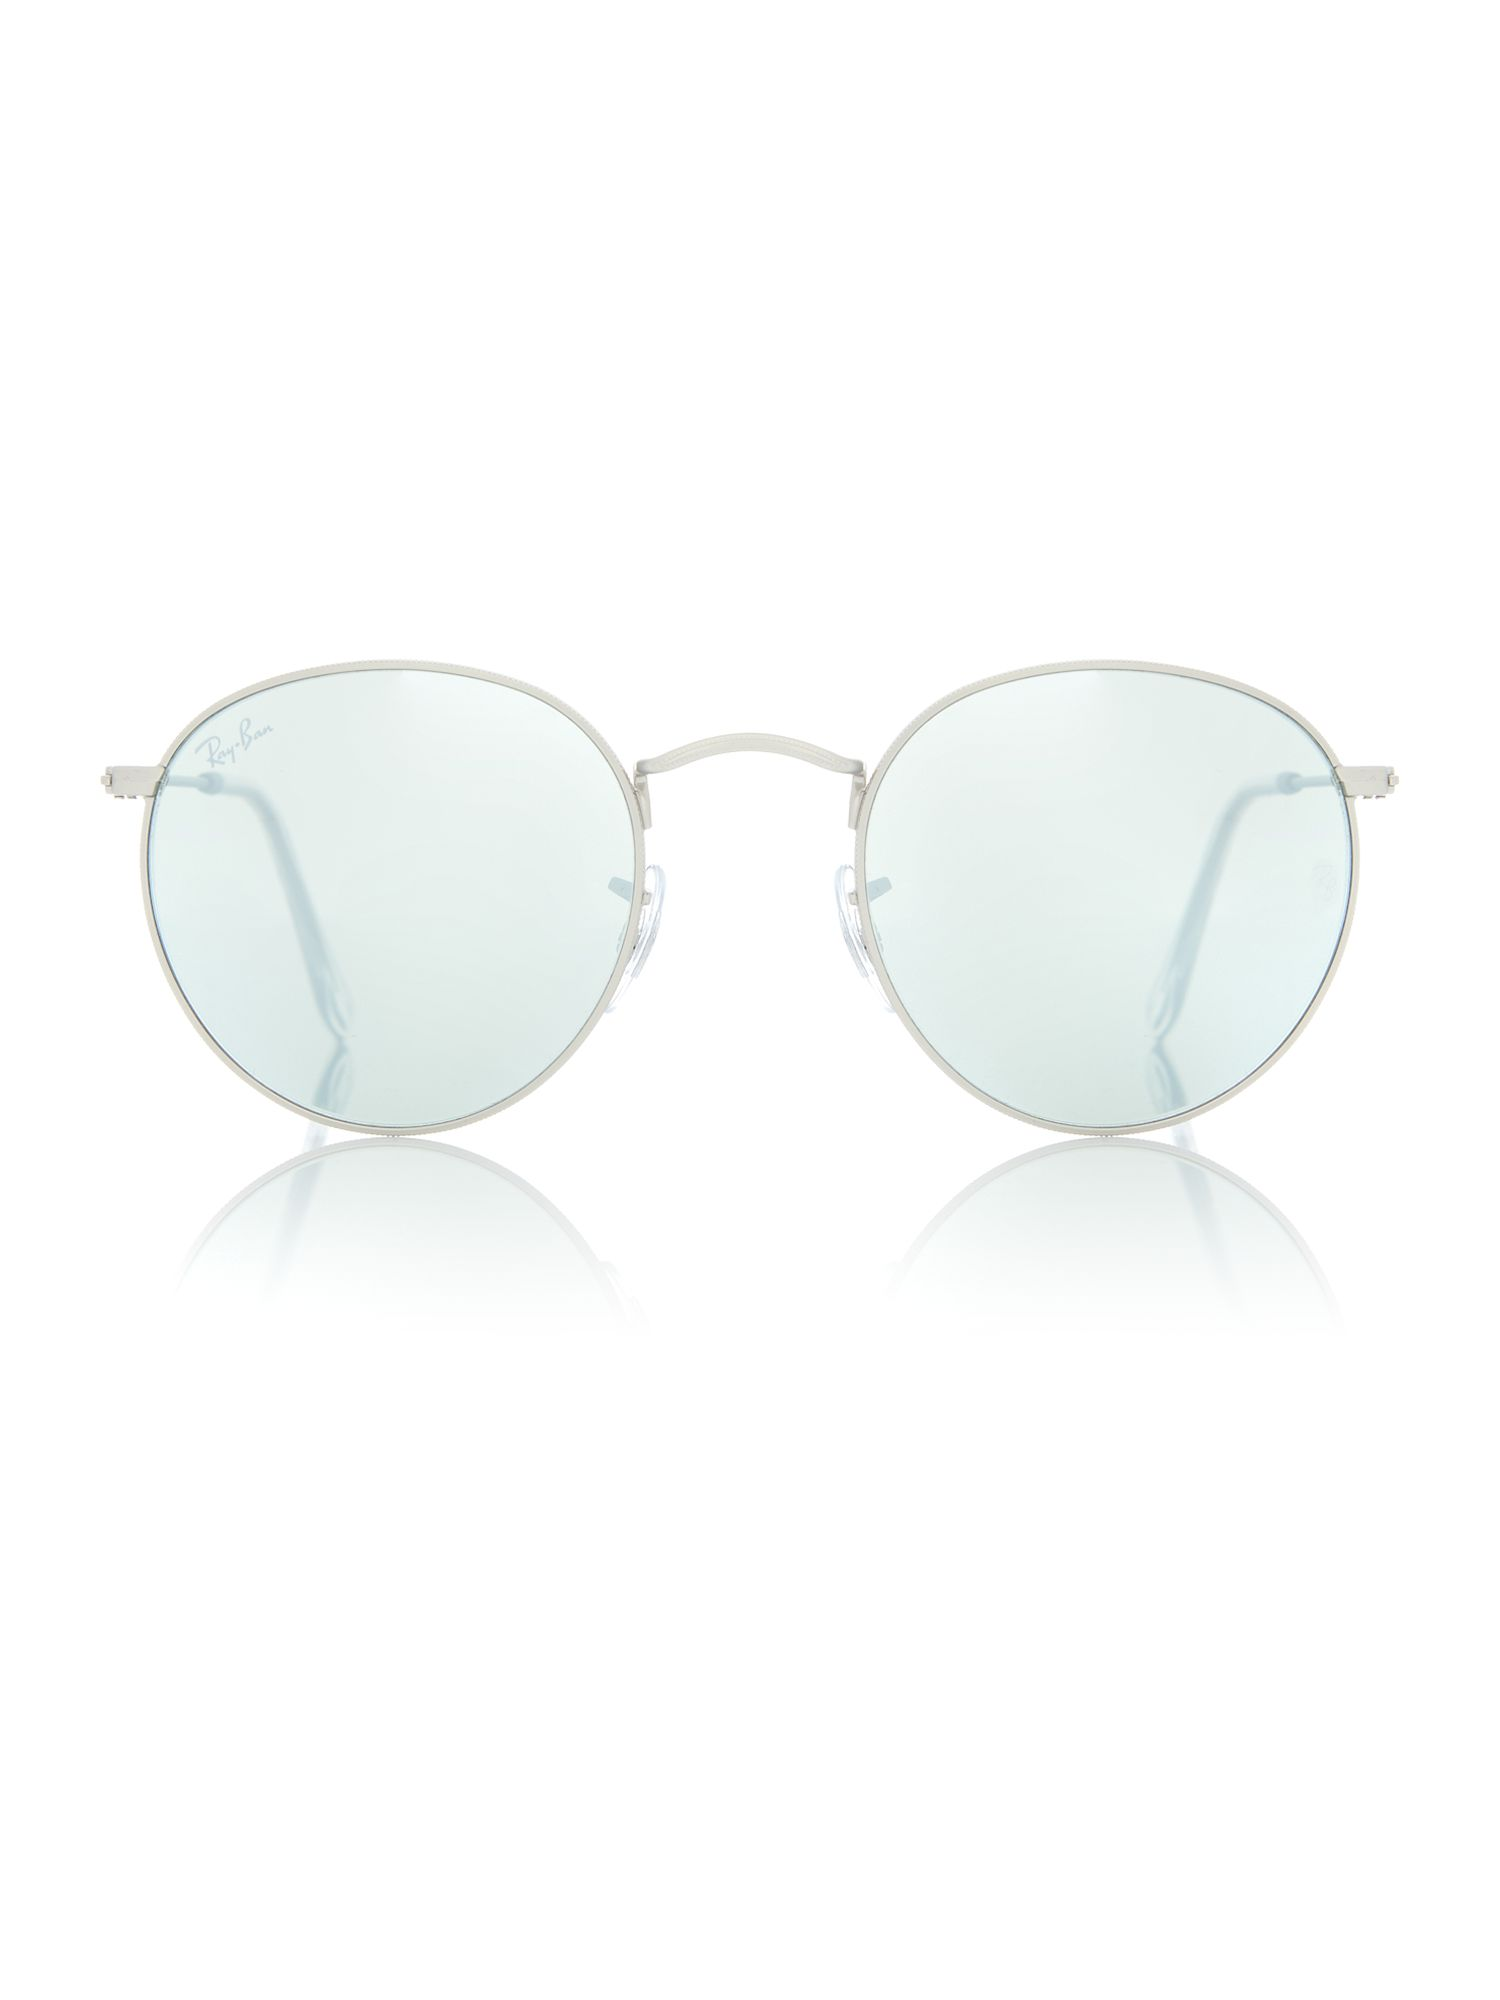 ray ban round sunglasses at house of fraser Ray-Ban Clubmaster Glasses ray ban silver rb3447 round metal sunglasses